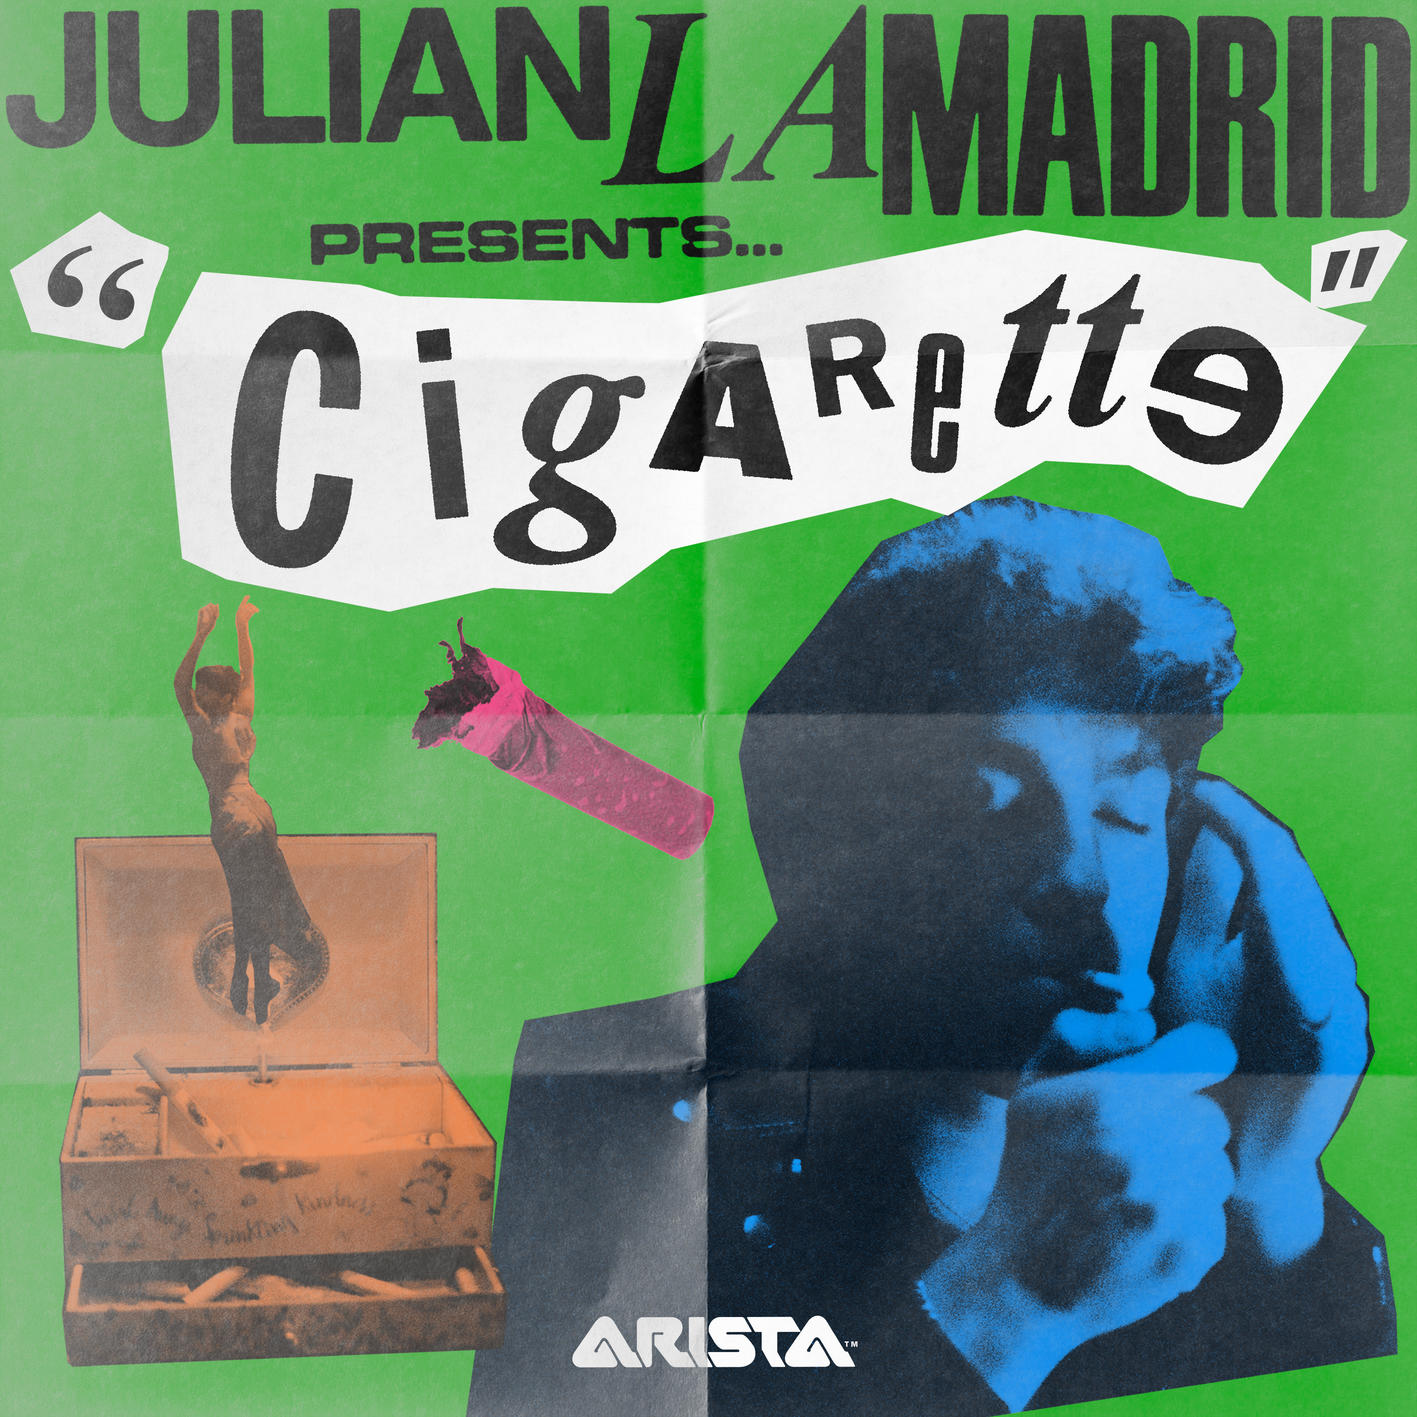 Julian Lamadrid – Cigarette